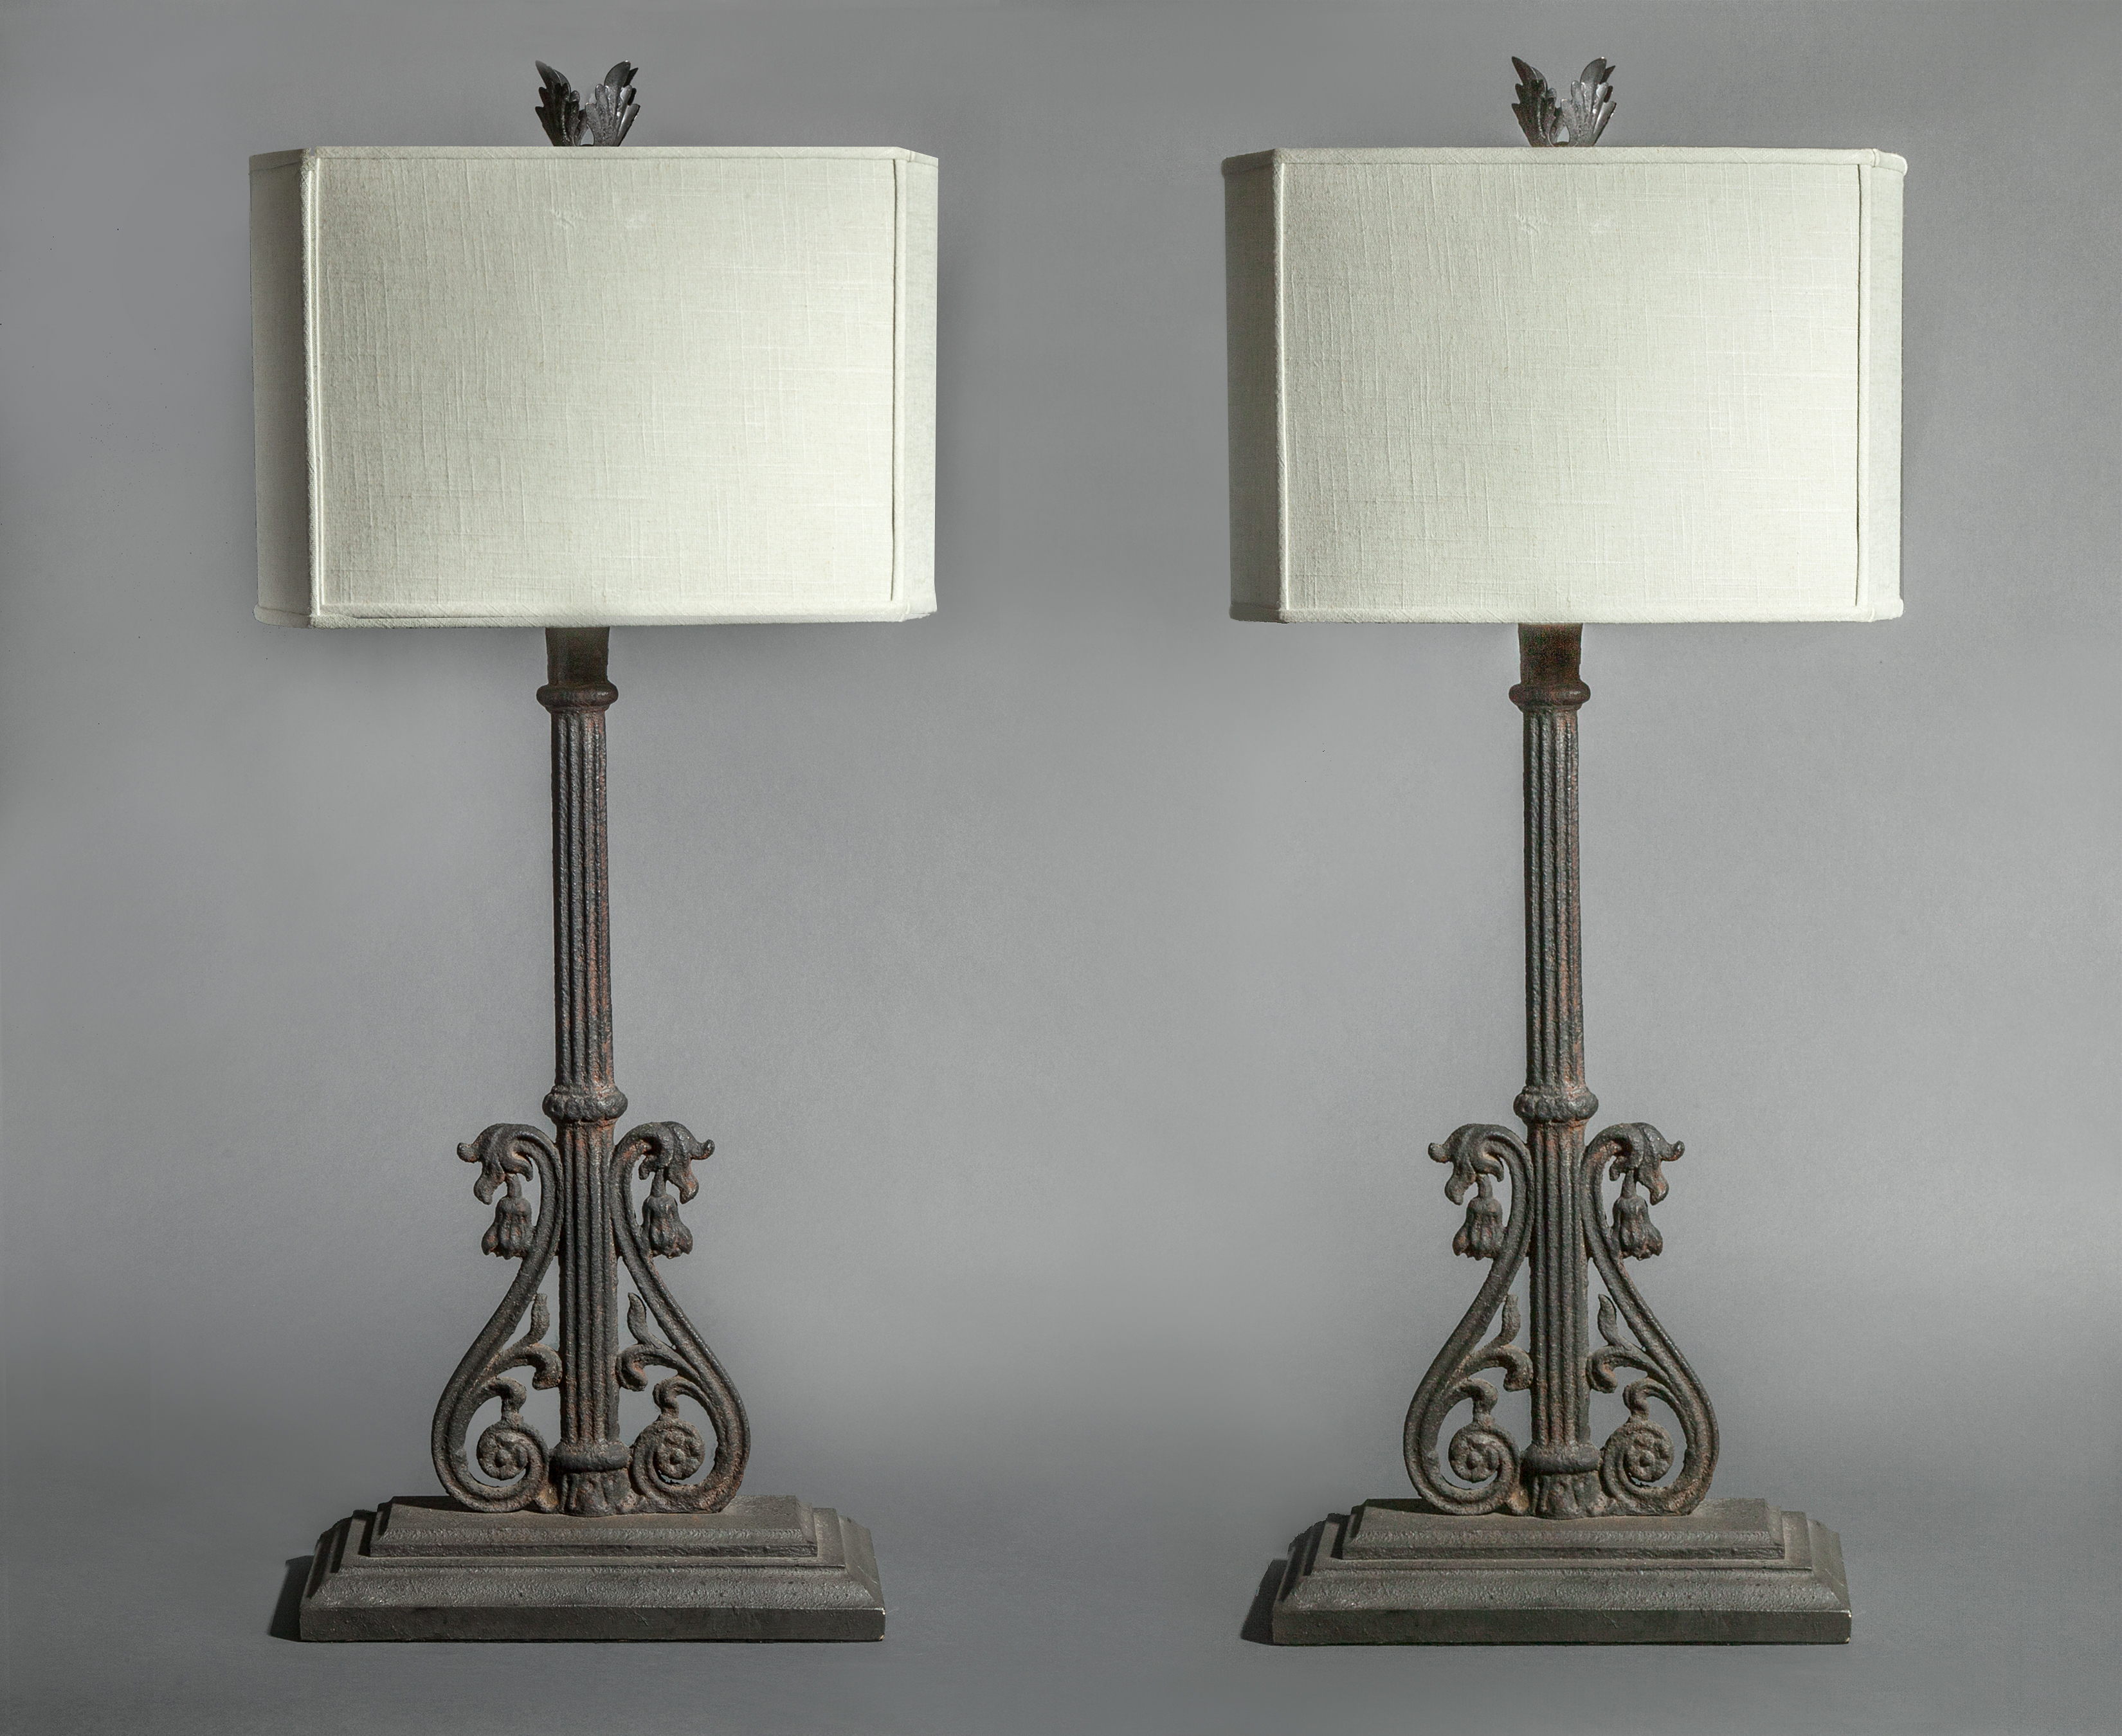 Pair of Lamps Using 19th Century Iron